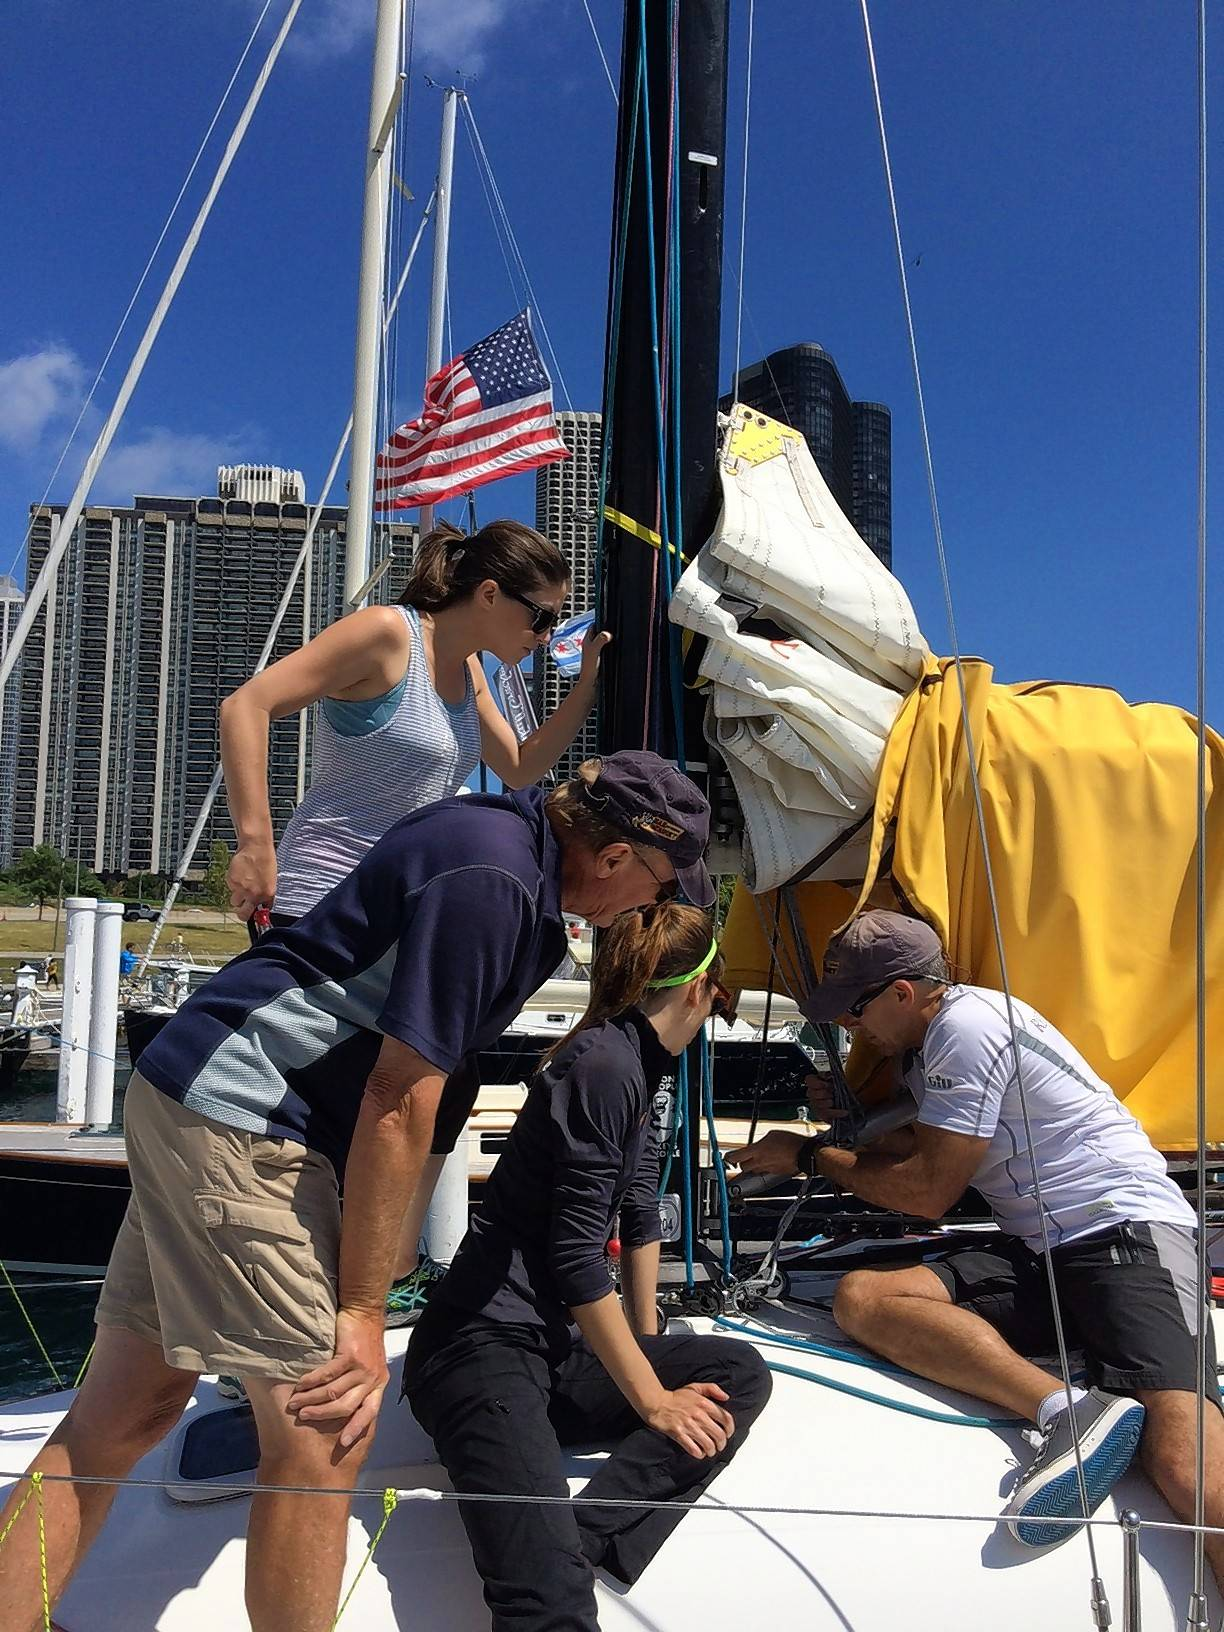 Crew members of the Sail Monkey get ready to participate in the 108th annual Chicago Yacht Club's Race to Mackinac.